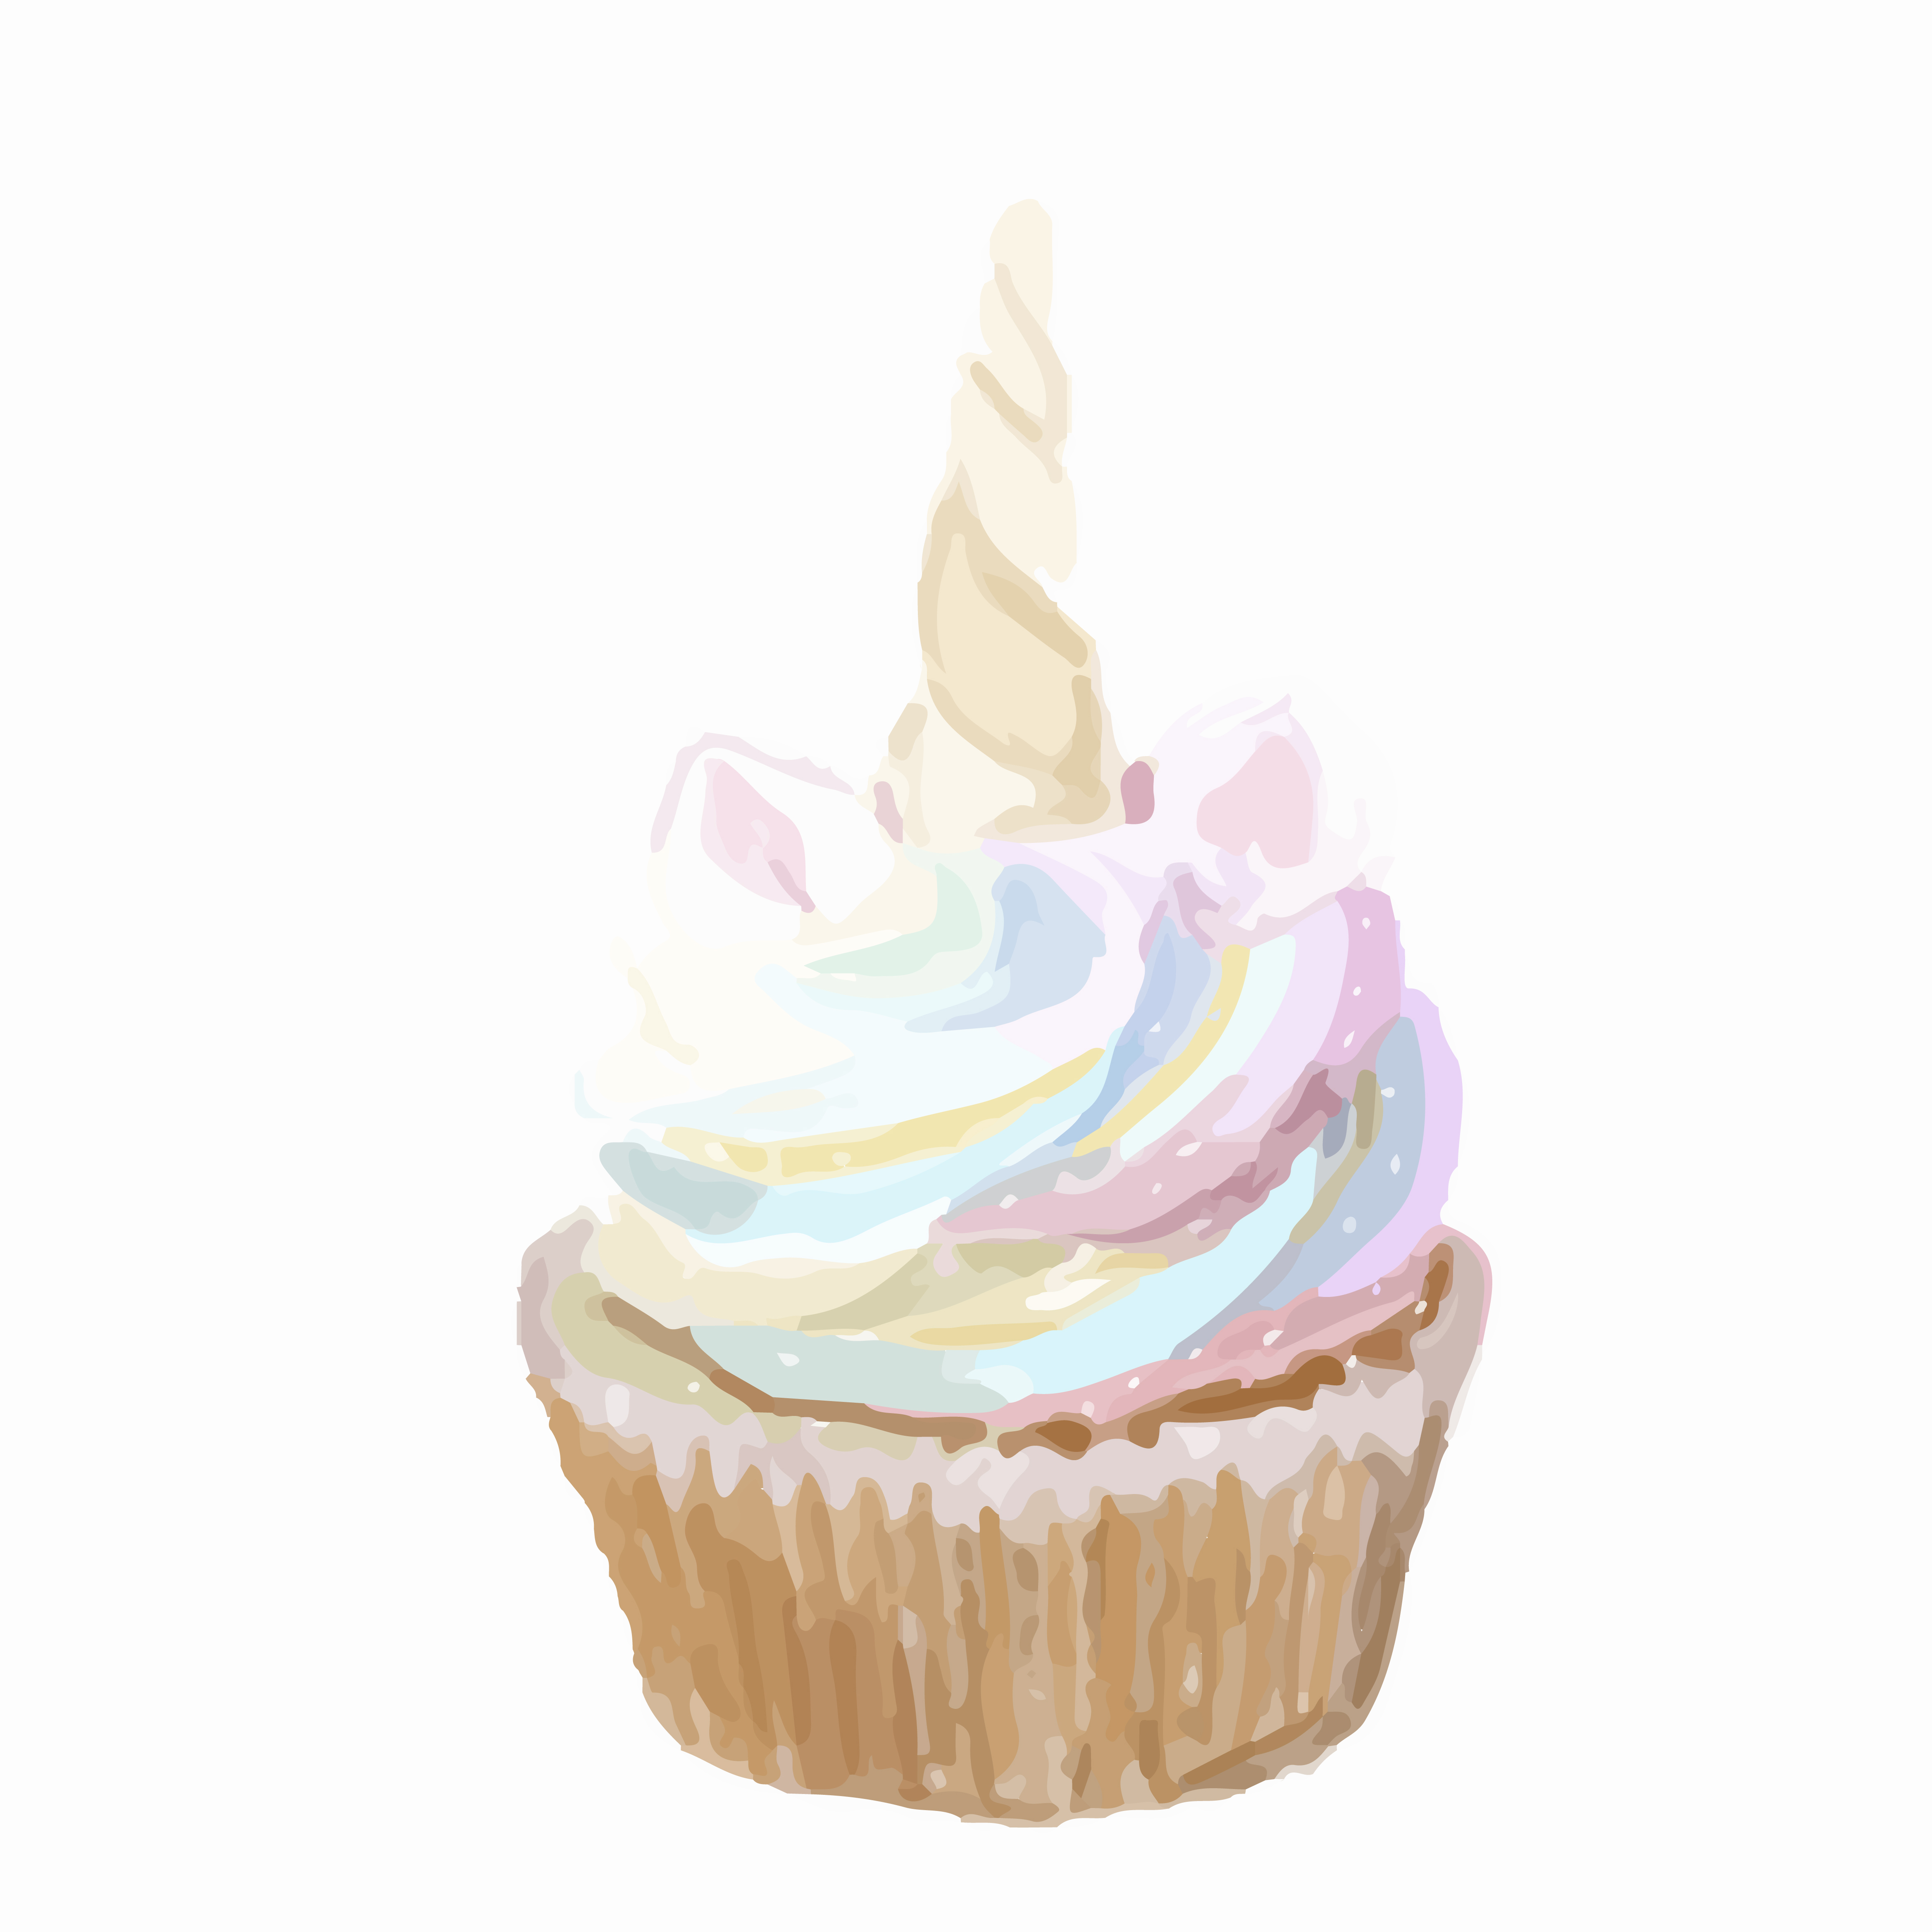 Hand Drawn Cupcake Watercolor Style Download Free